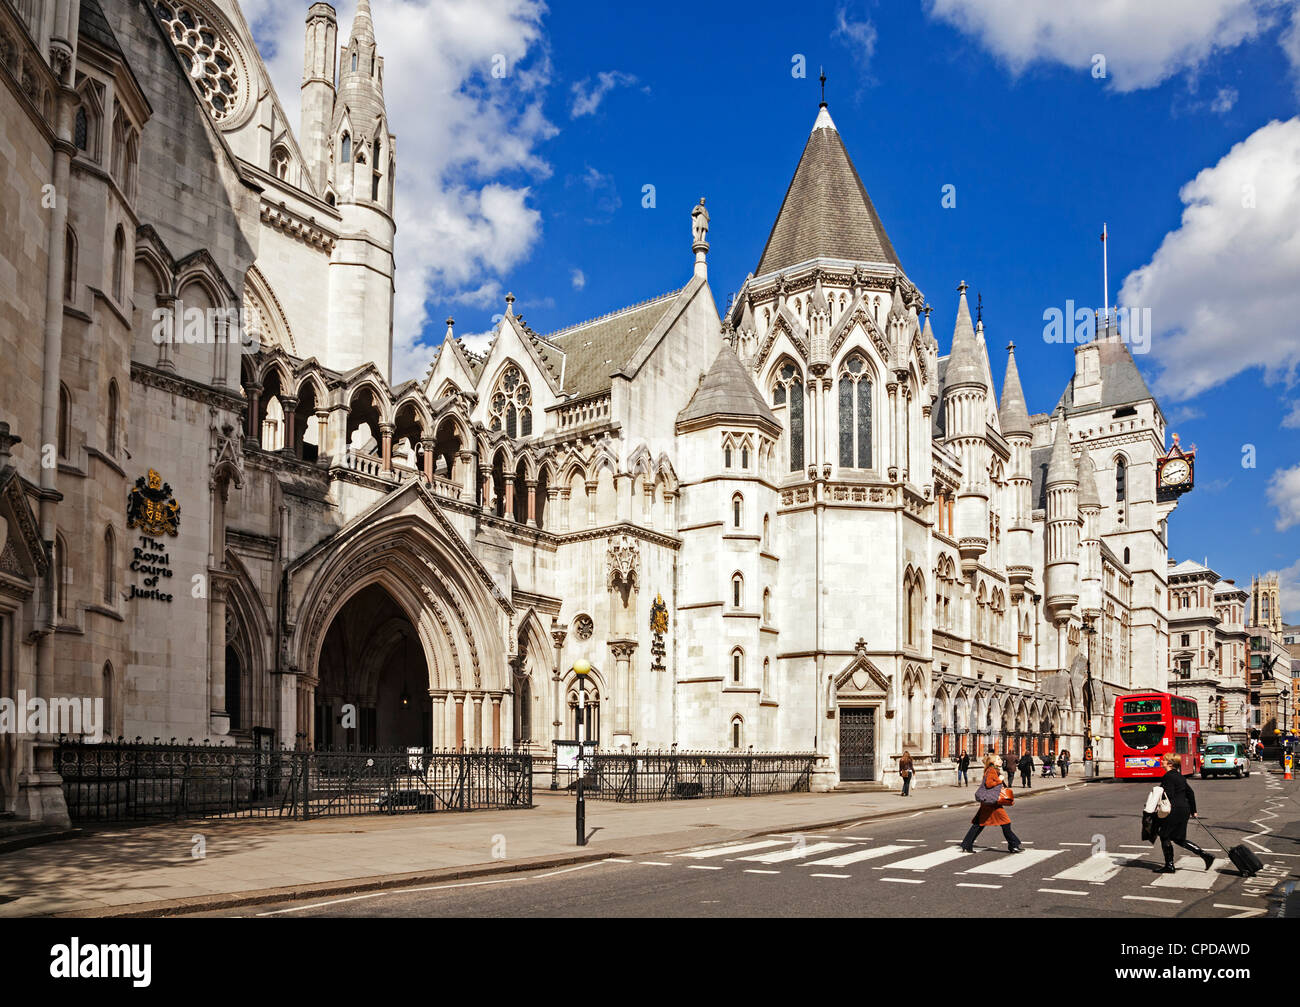 The Royal Courts of Justice, Fleet Street, London, England. - Stock Image